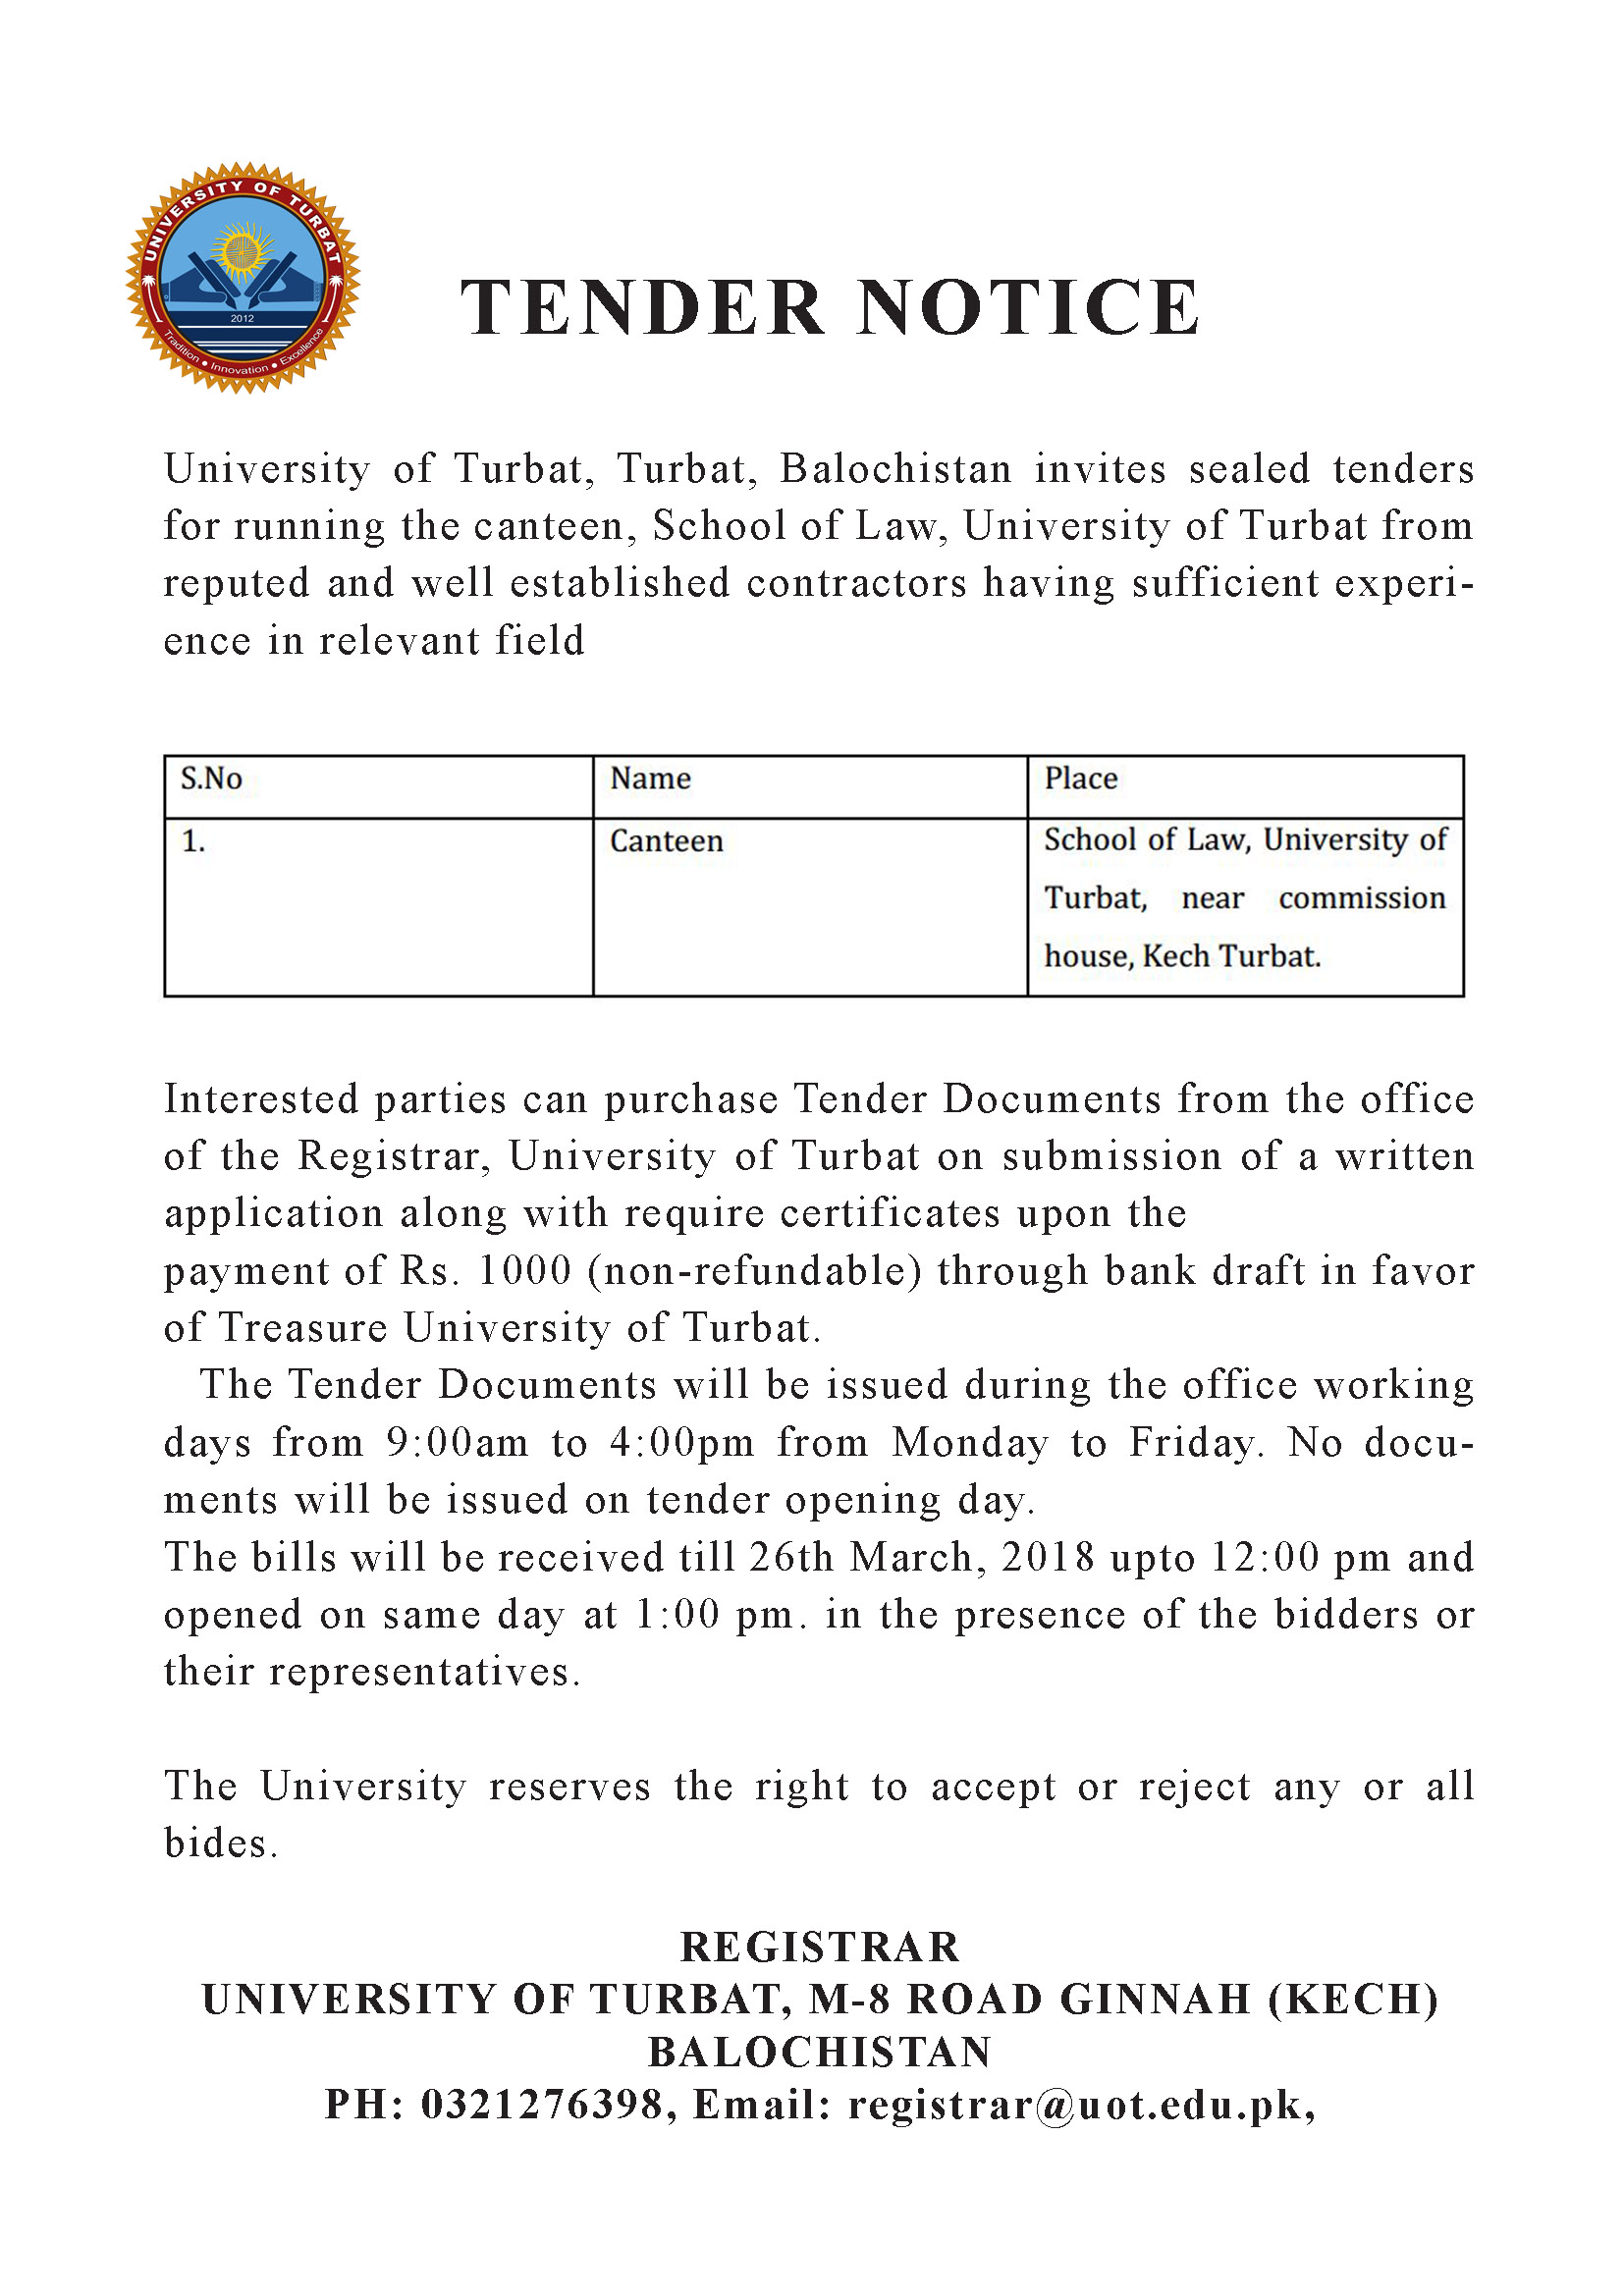 Tender Notice for Canteen